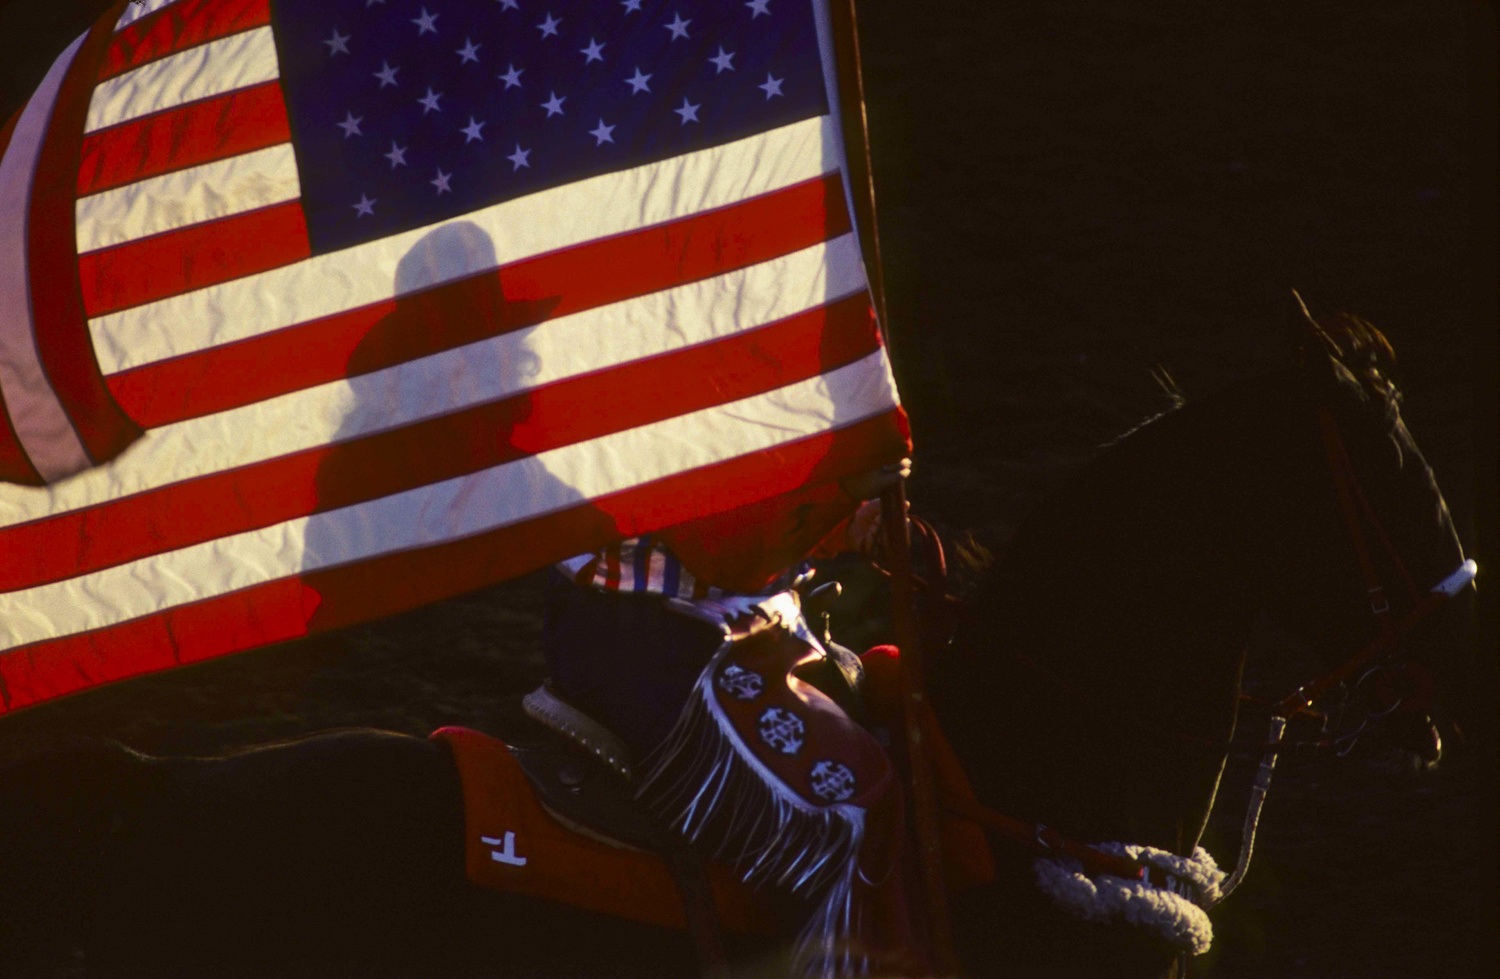 patrick-cone-photograph-american-flag